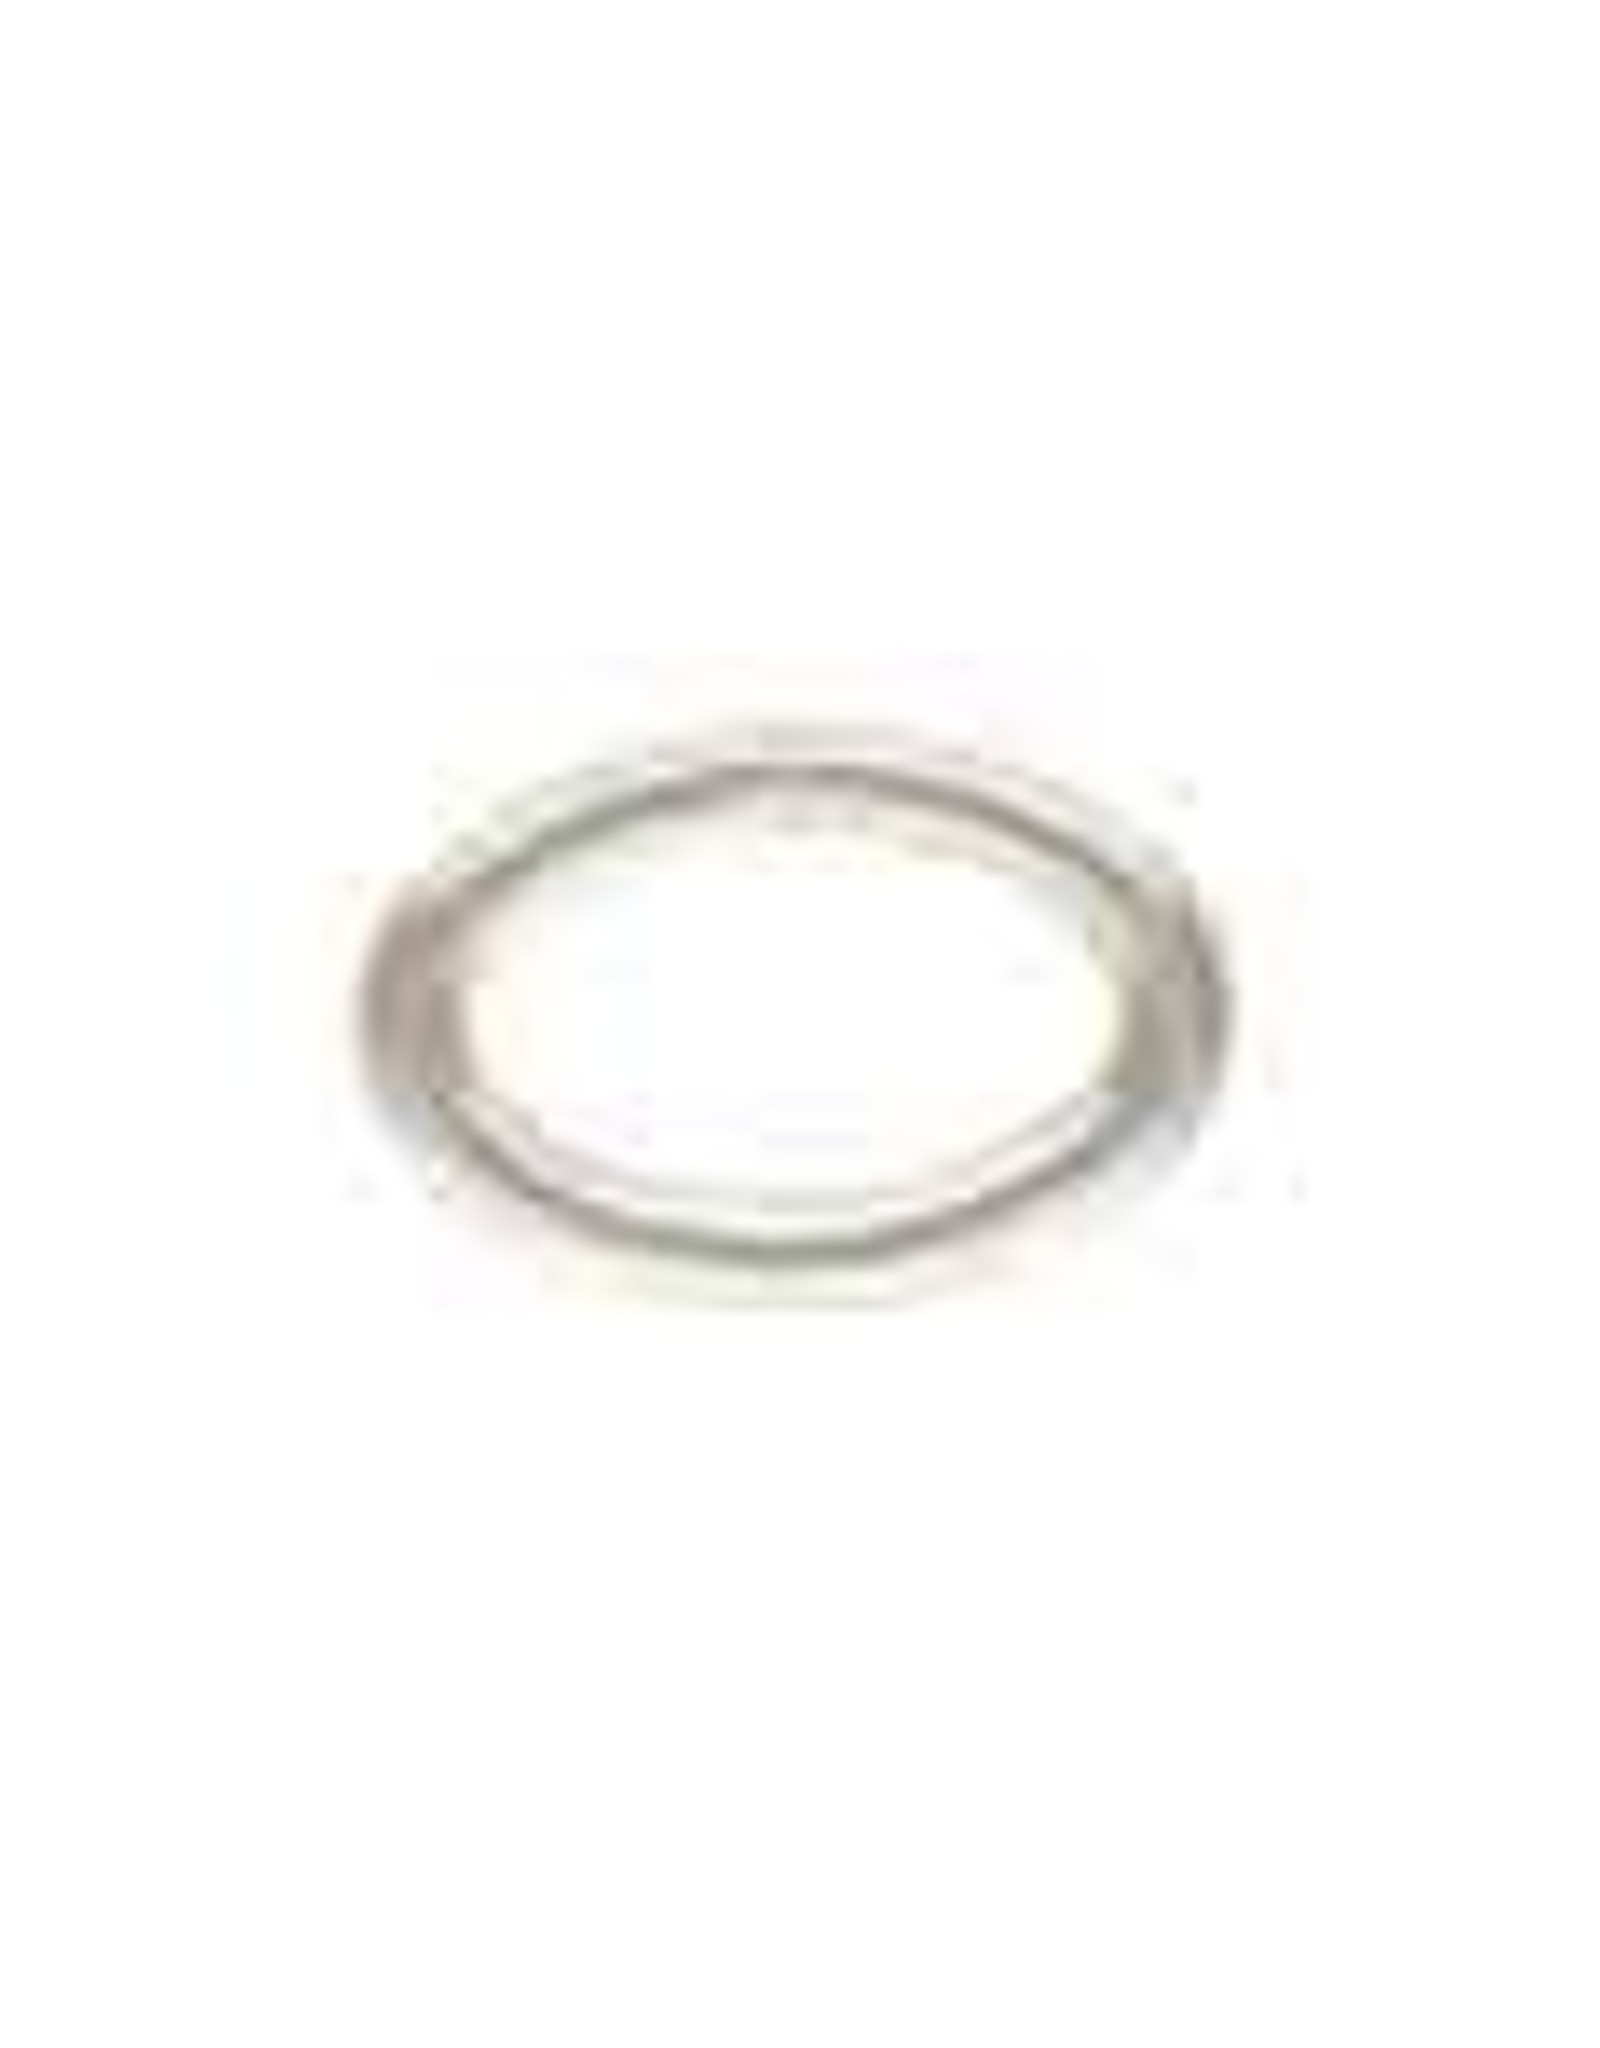 5x7mm Oval Jump Ring 19.5ga Sterling Silver Qty 10